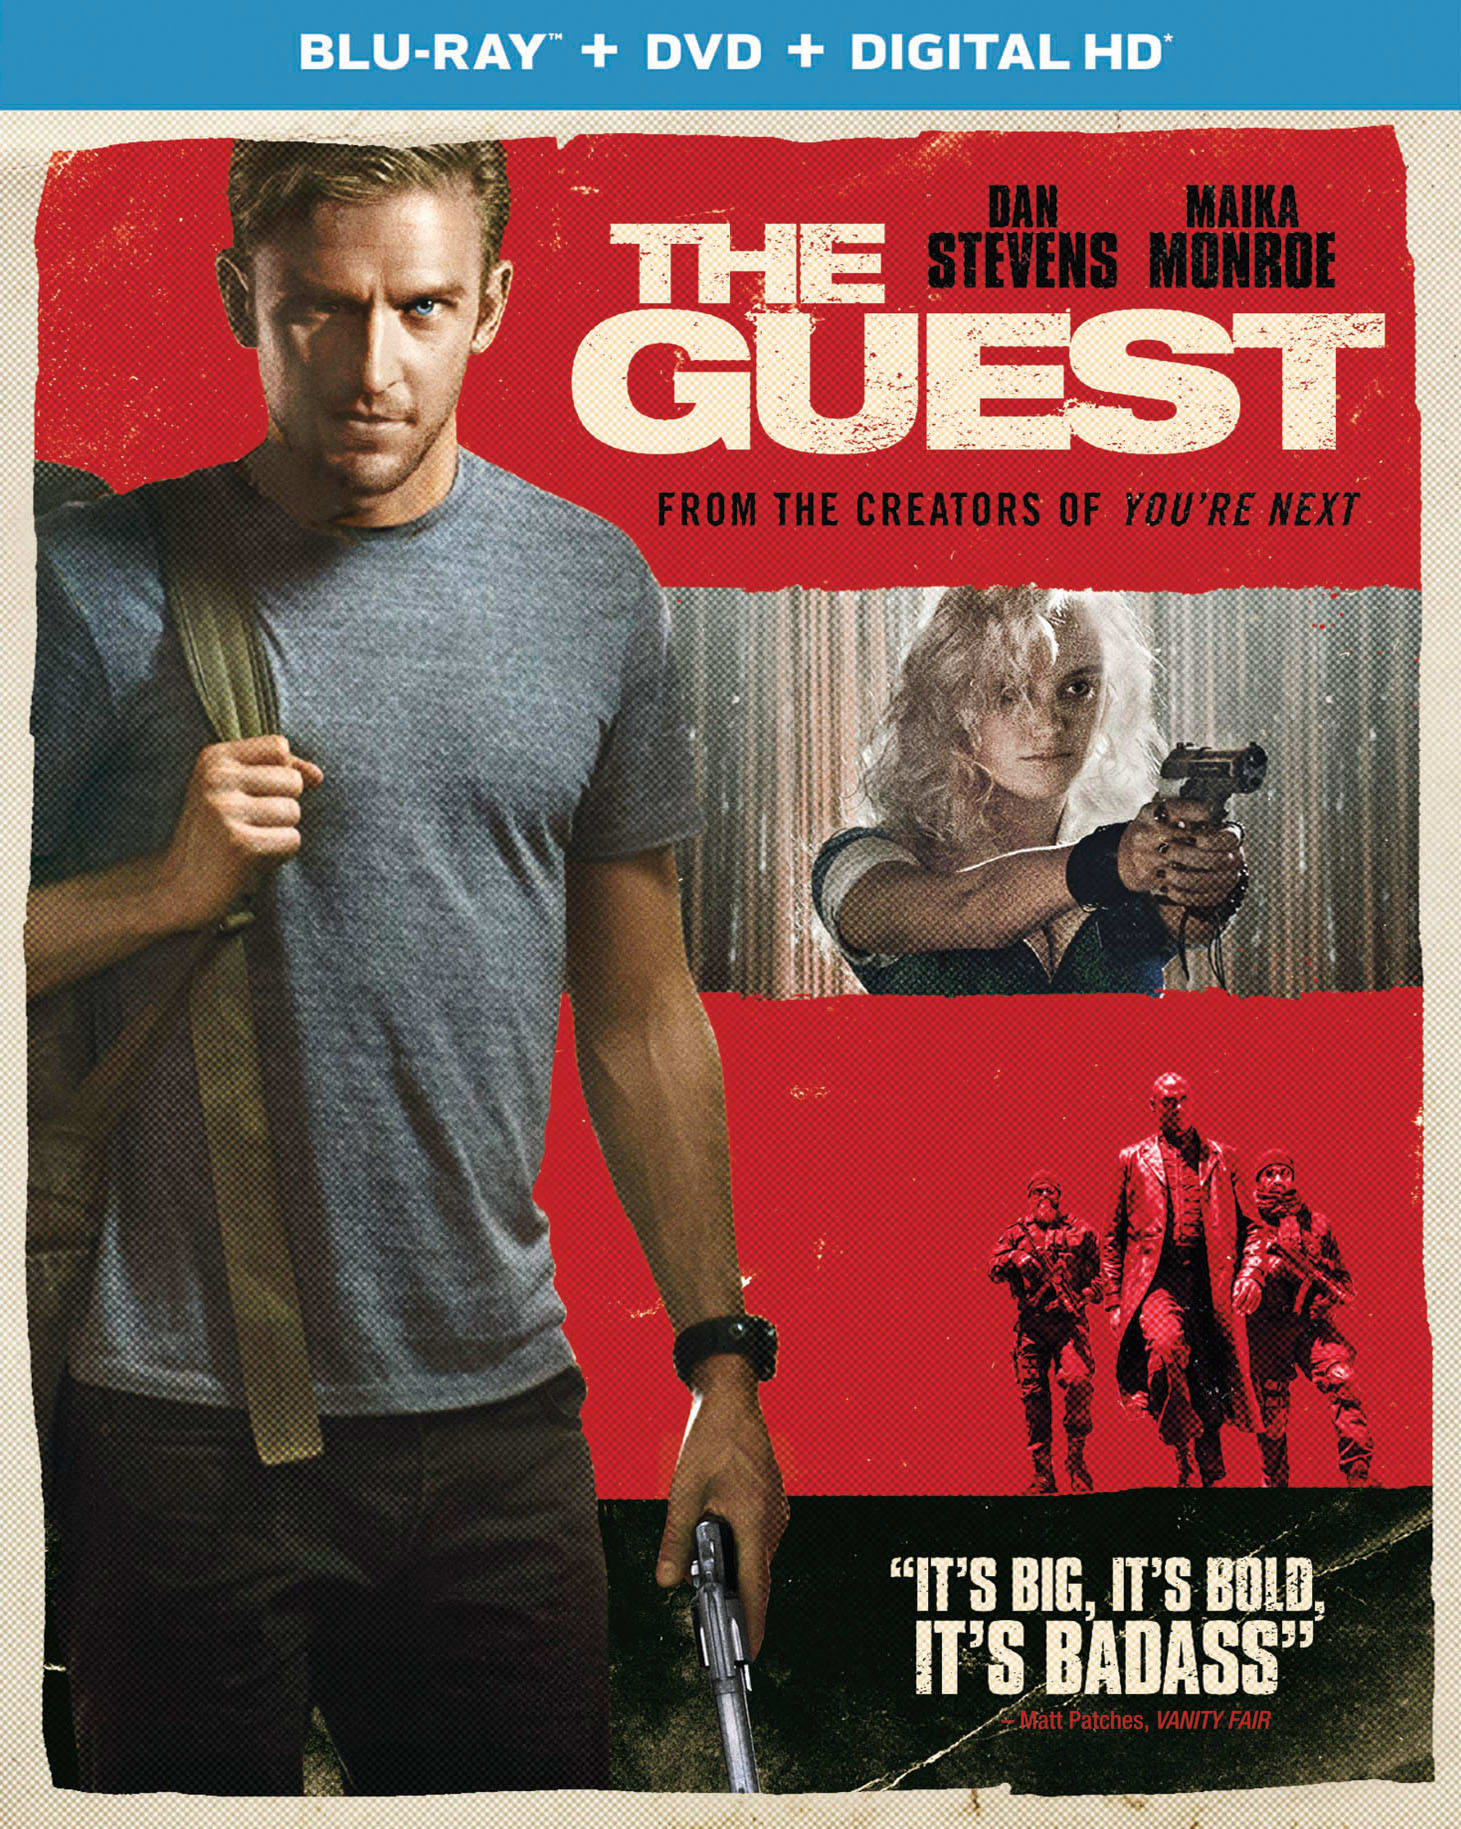 The Guest (DVD + Digital) [Blu-ray]